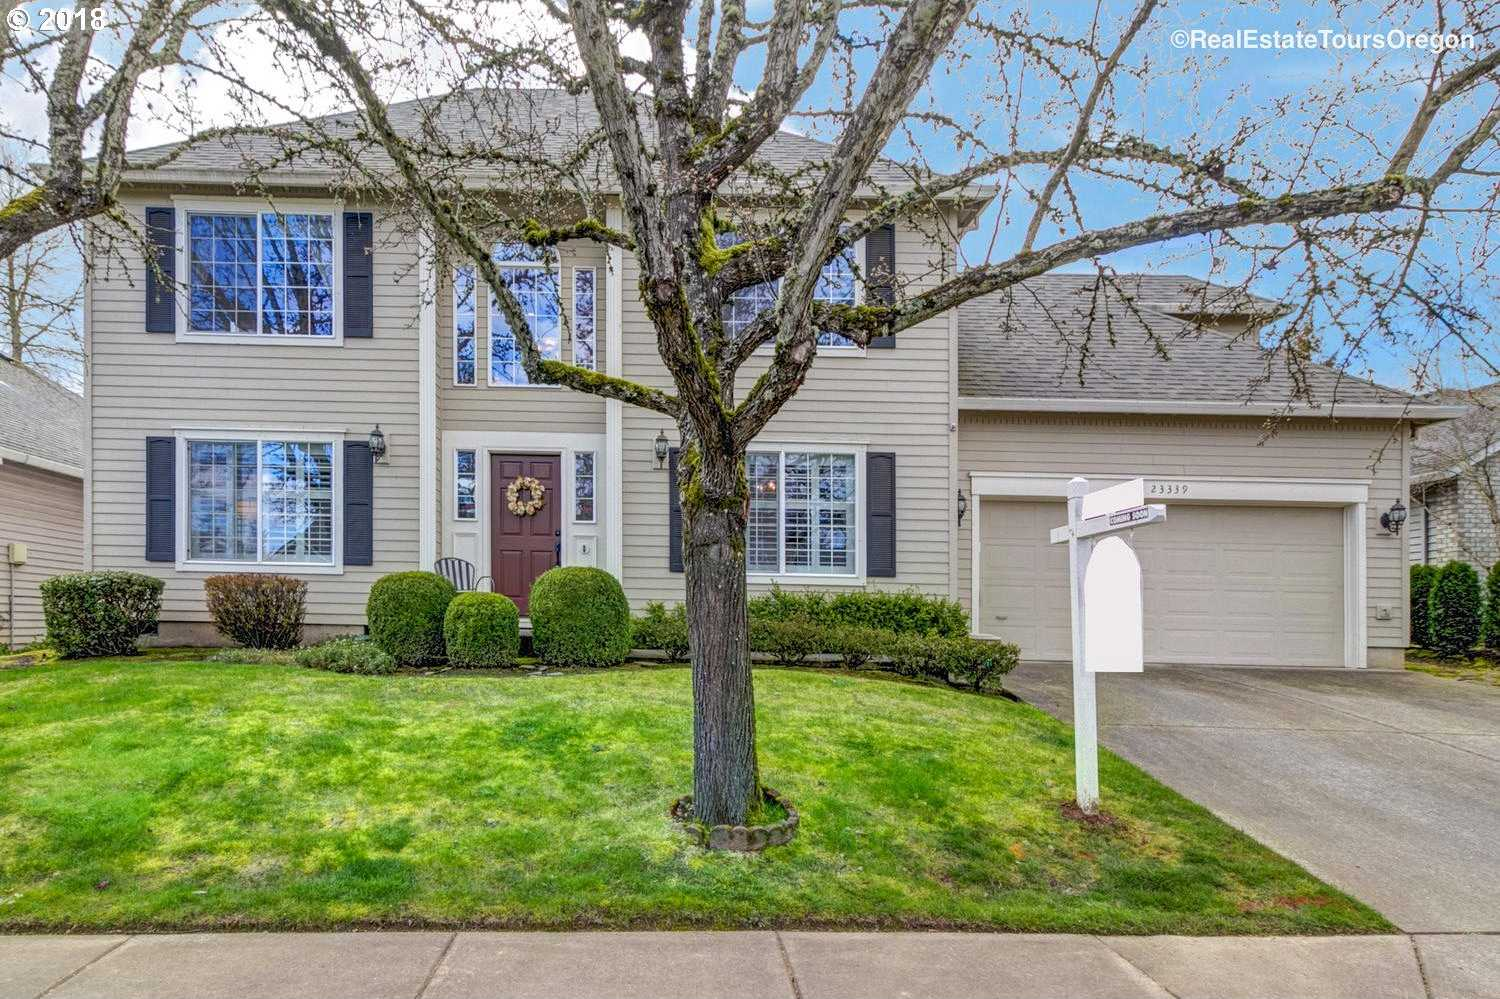 $470,000 - 3Br/3Ba -  for Sale in Woodhaven, Sherwood